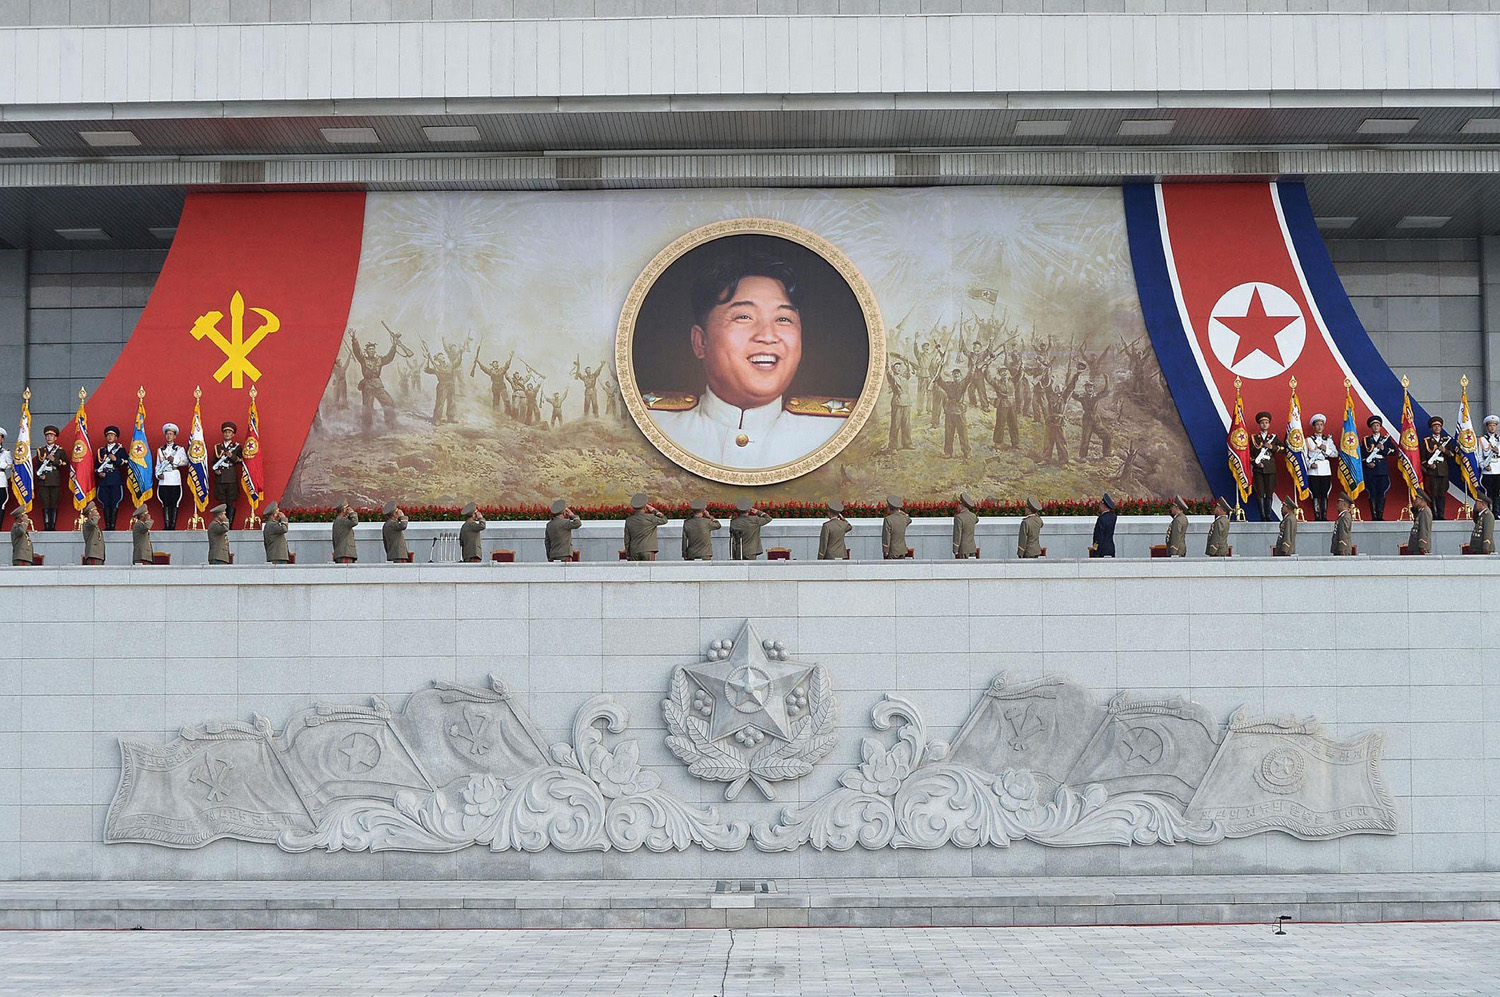 This photo taken on July 27, 2014 and released on July 28, 2014 by North Korea's official Korean Central News Agency (KCNA) shows service personnel of North Korean Army salute to a portrait of North Korean leader Kim Jong-Un clad in marshal unform at the plaza of the Kumsusan Palace of the Sun in Pyongyang, the 61st anniversary of the victory of the Fatherland Liberation War.